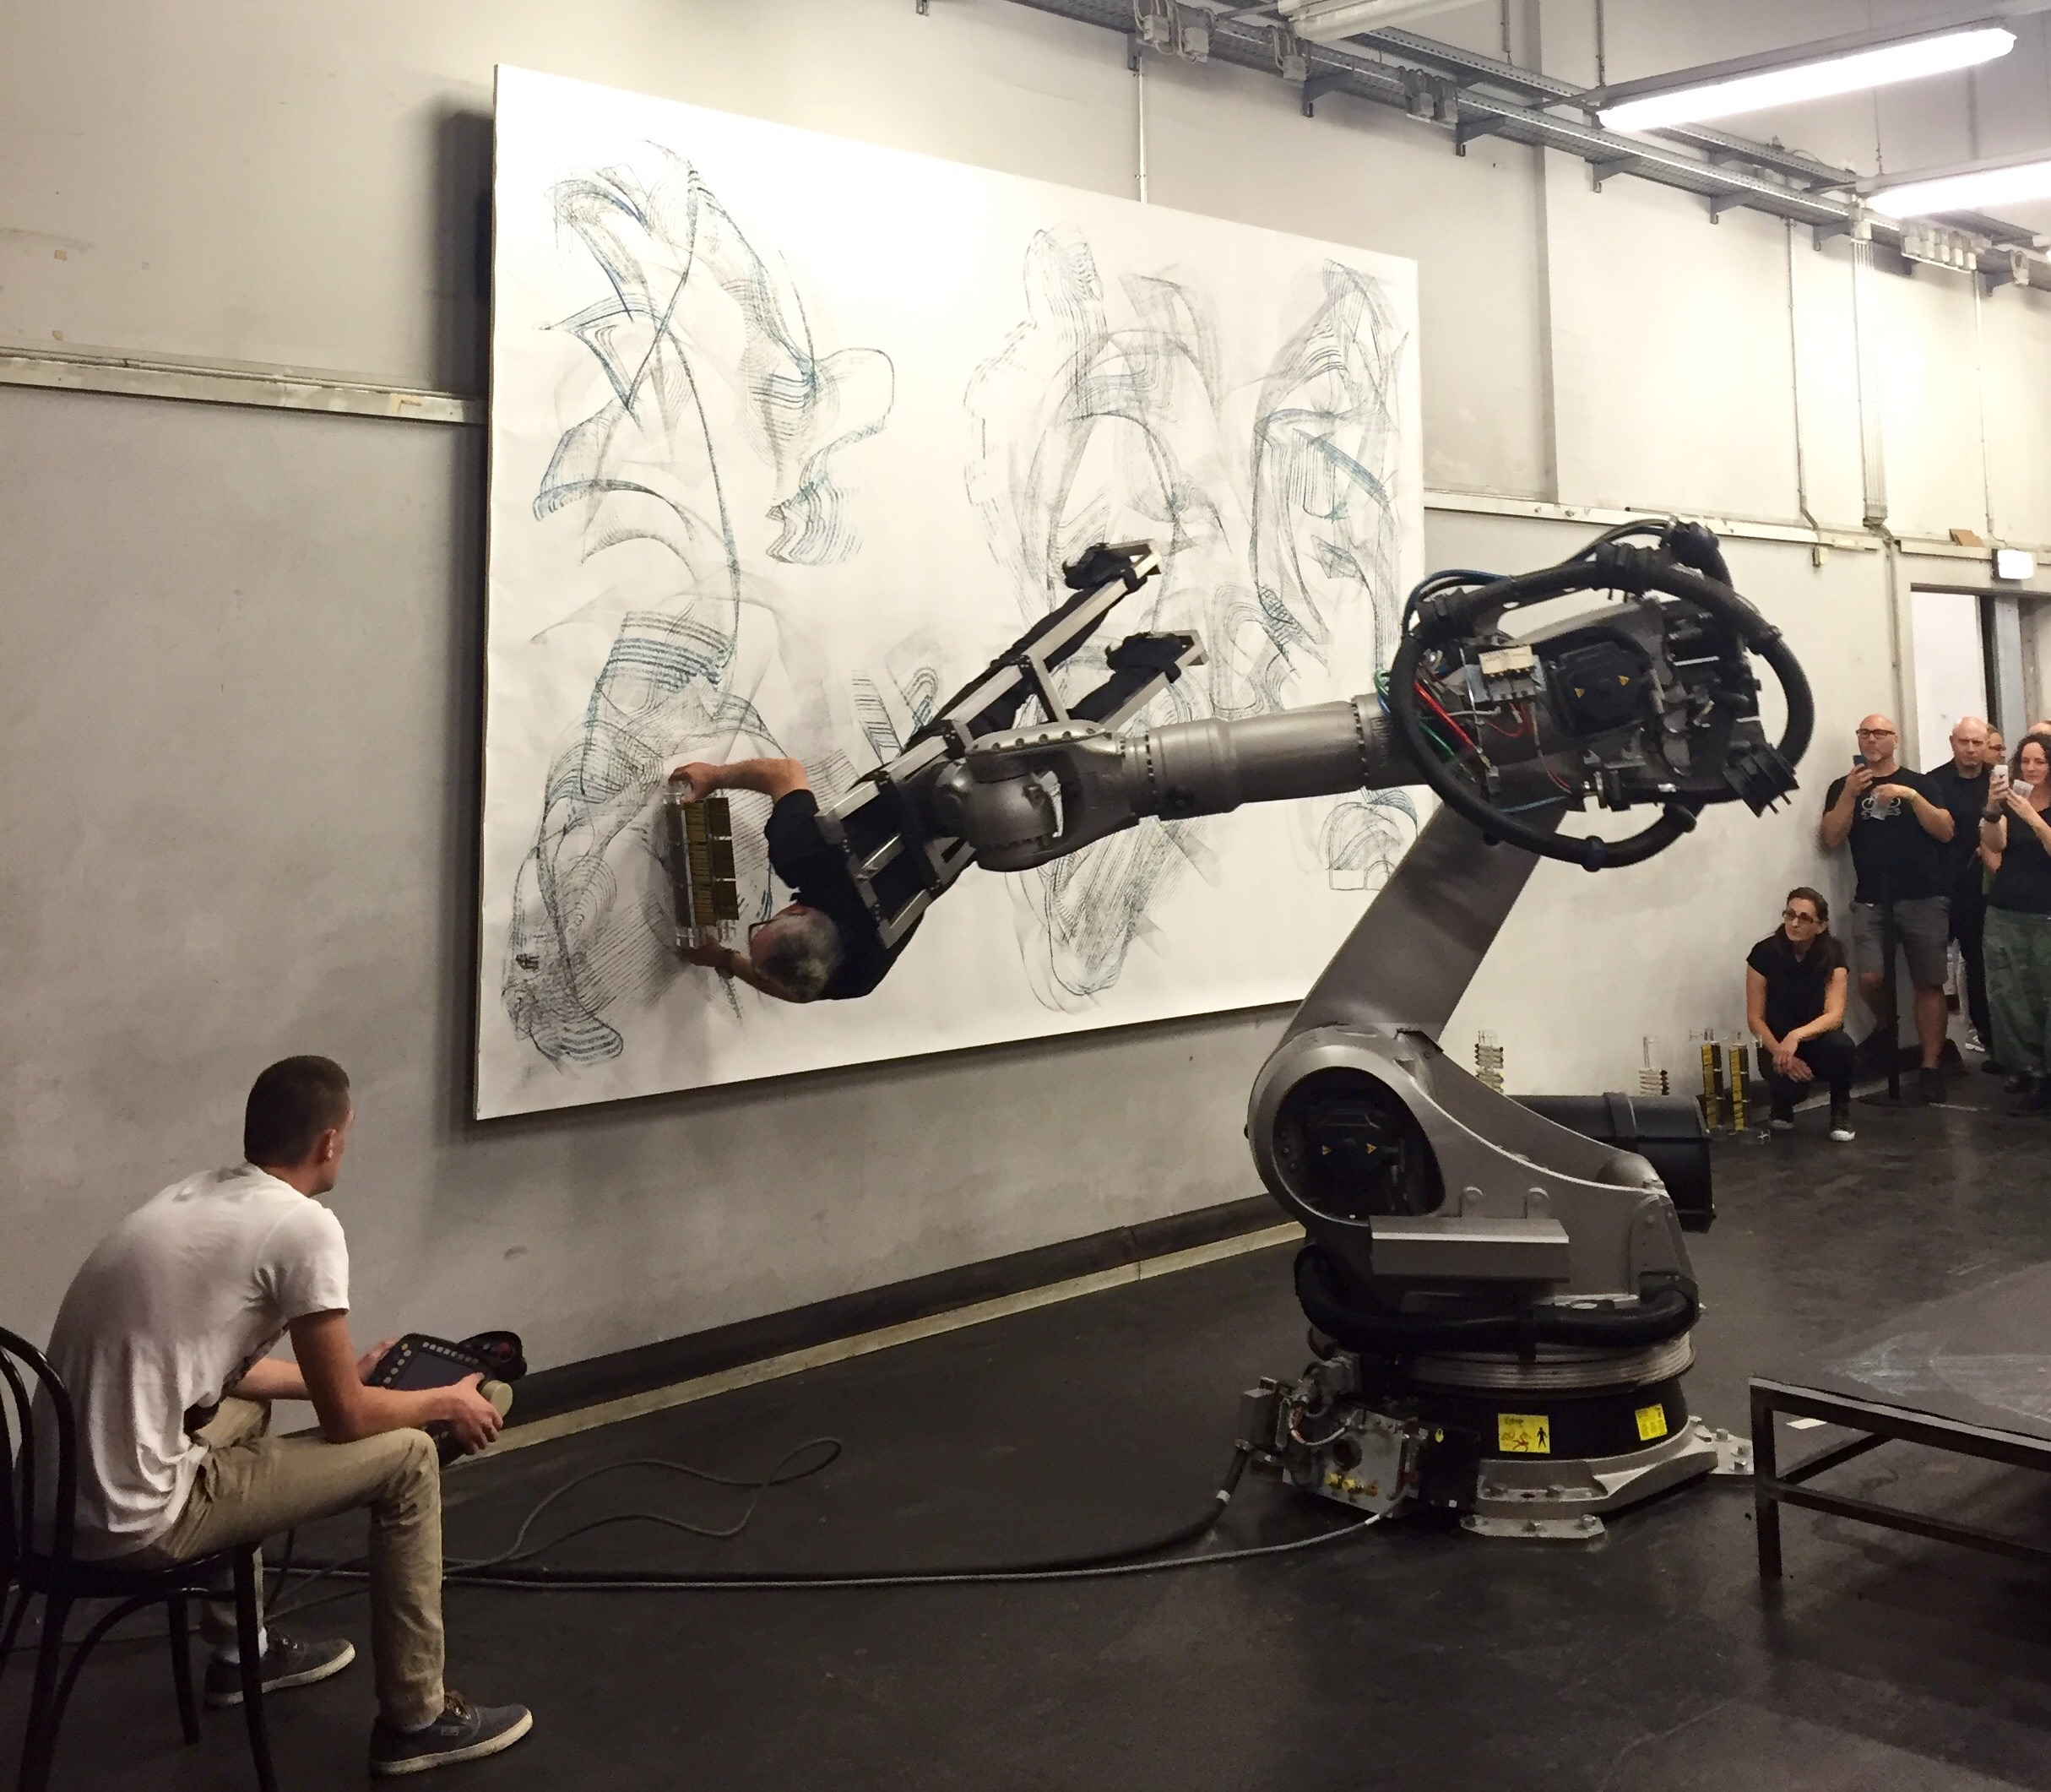 Performance by Dragan Ilic. A circularity of human/robot intention. Mesmerising to watch.